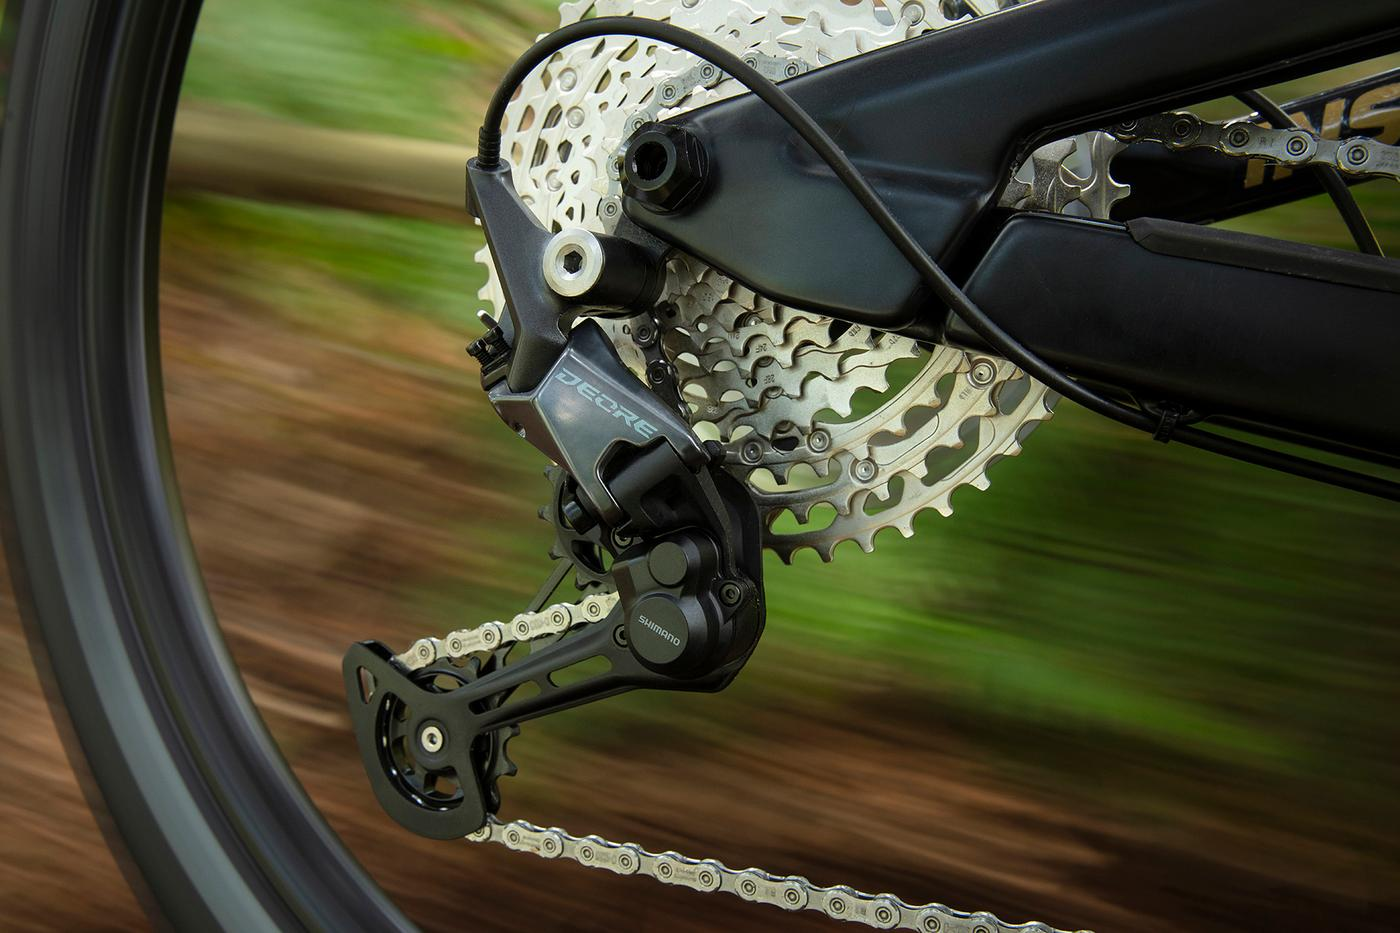 Shimano Announces New DEORE M6100, M5100, and M4100 Components